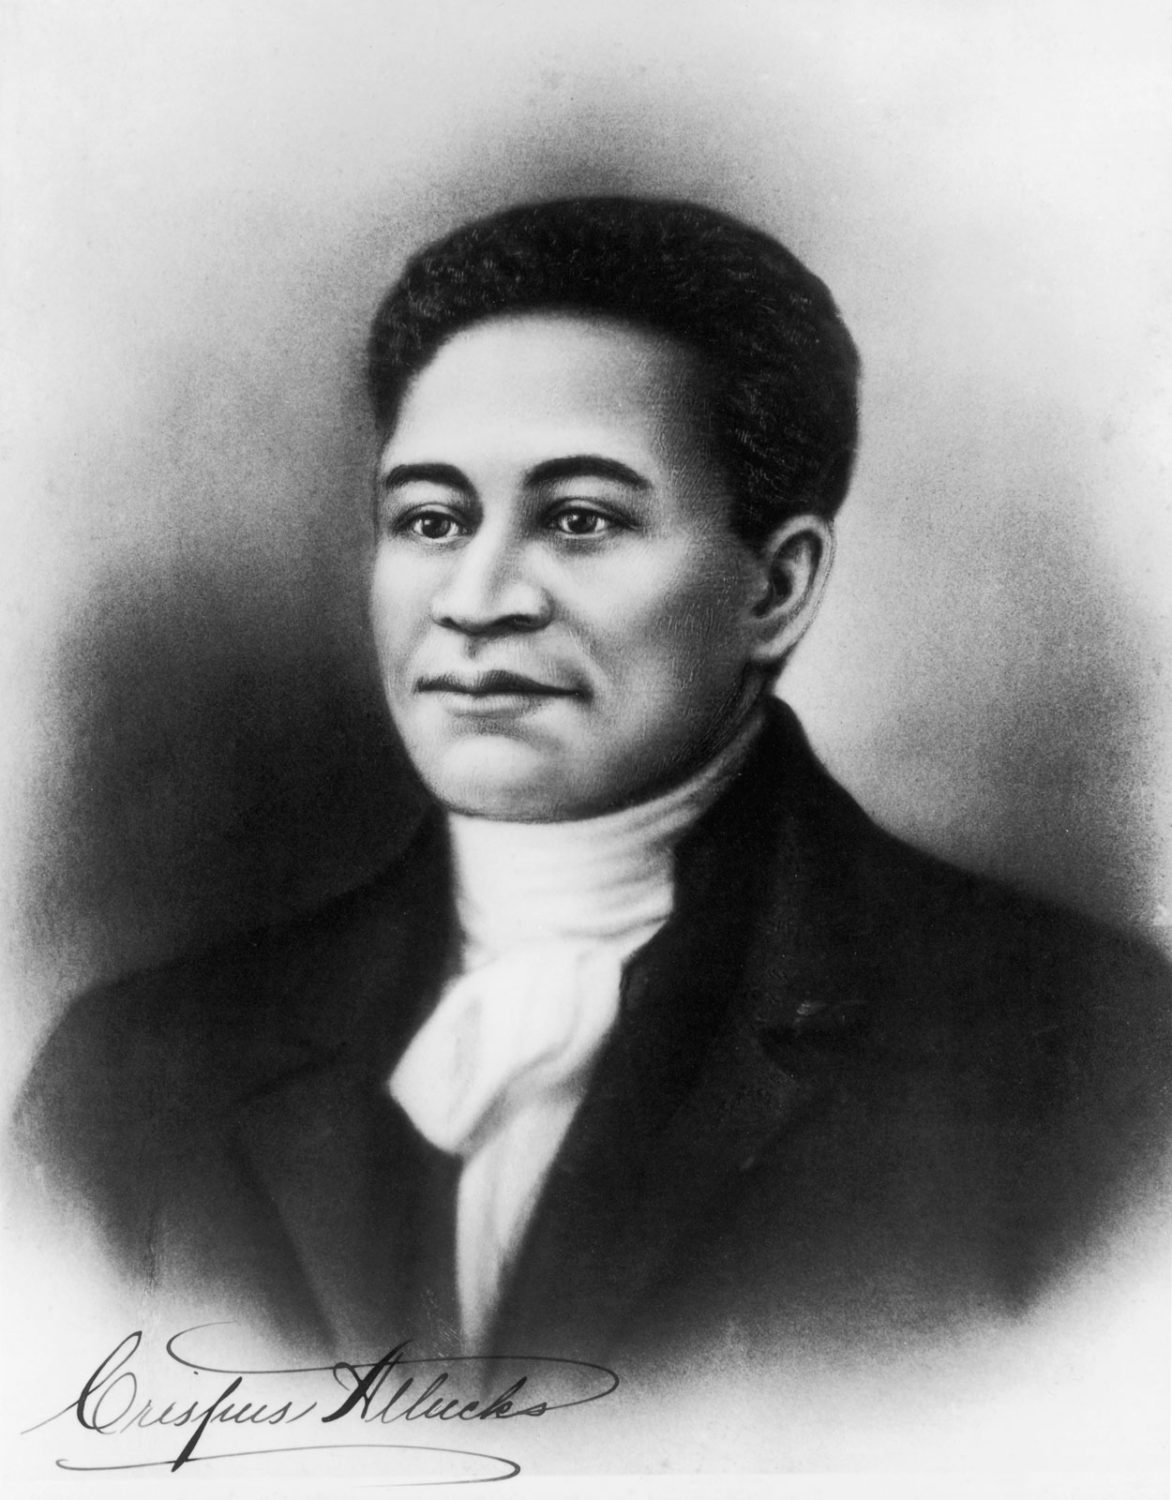 Crispus-Attucks, A Black storyteller chronicles the history of slavery and freedom, Culture Currents